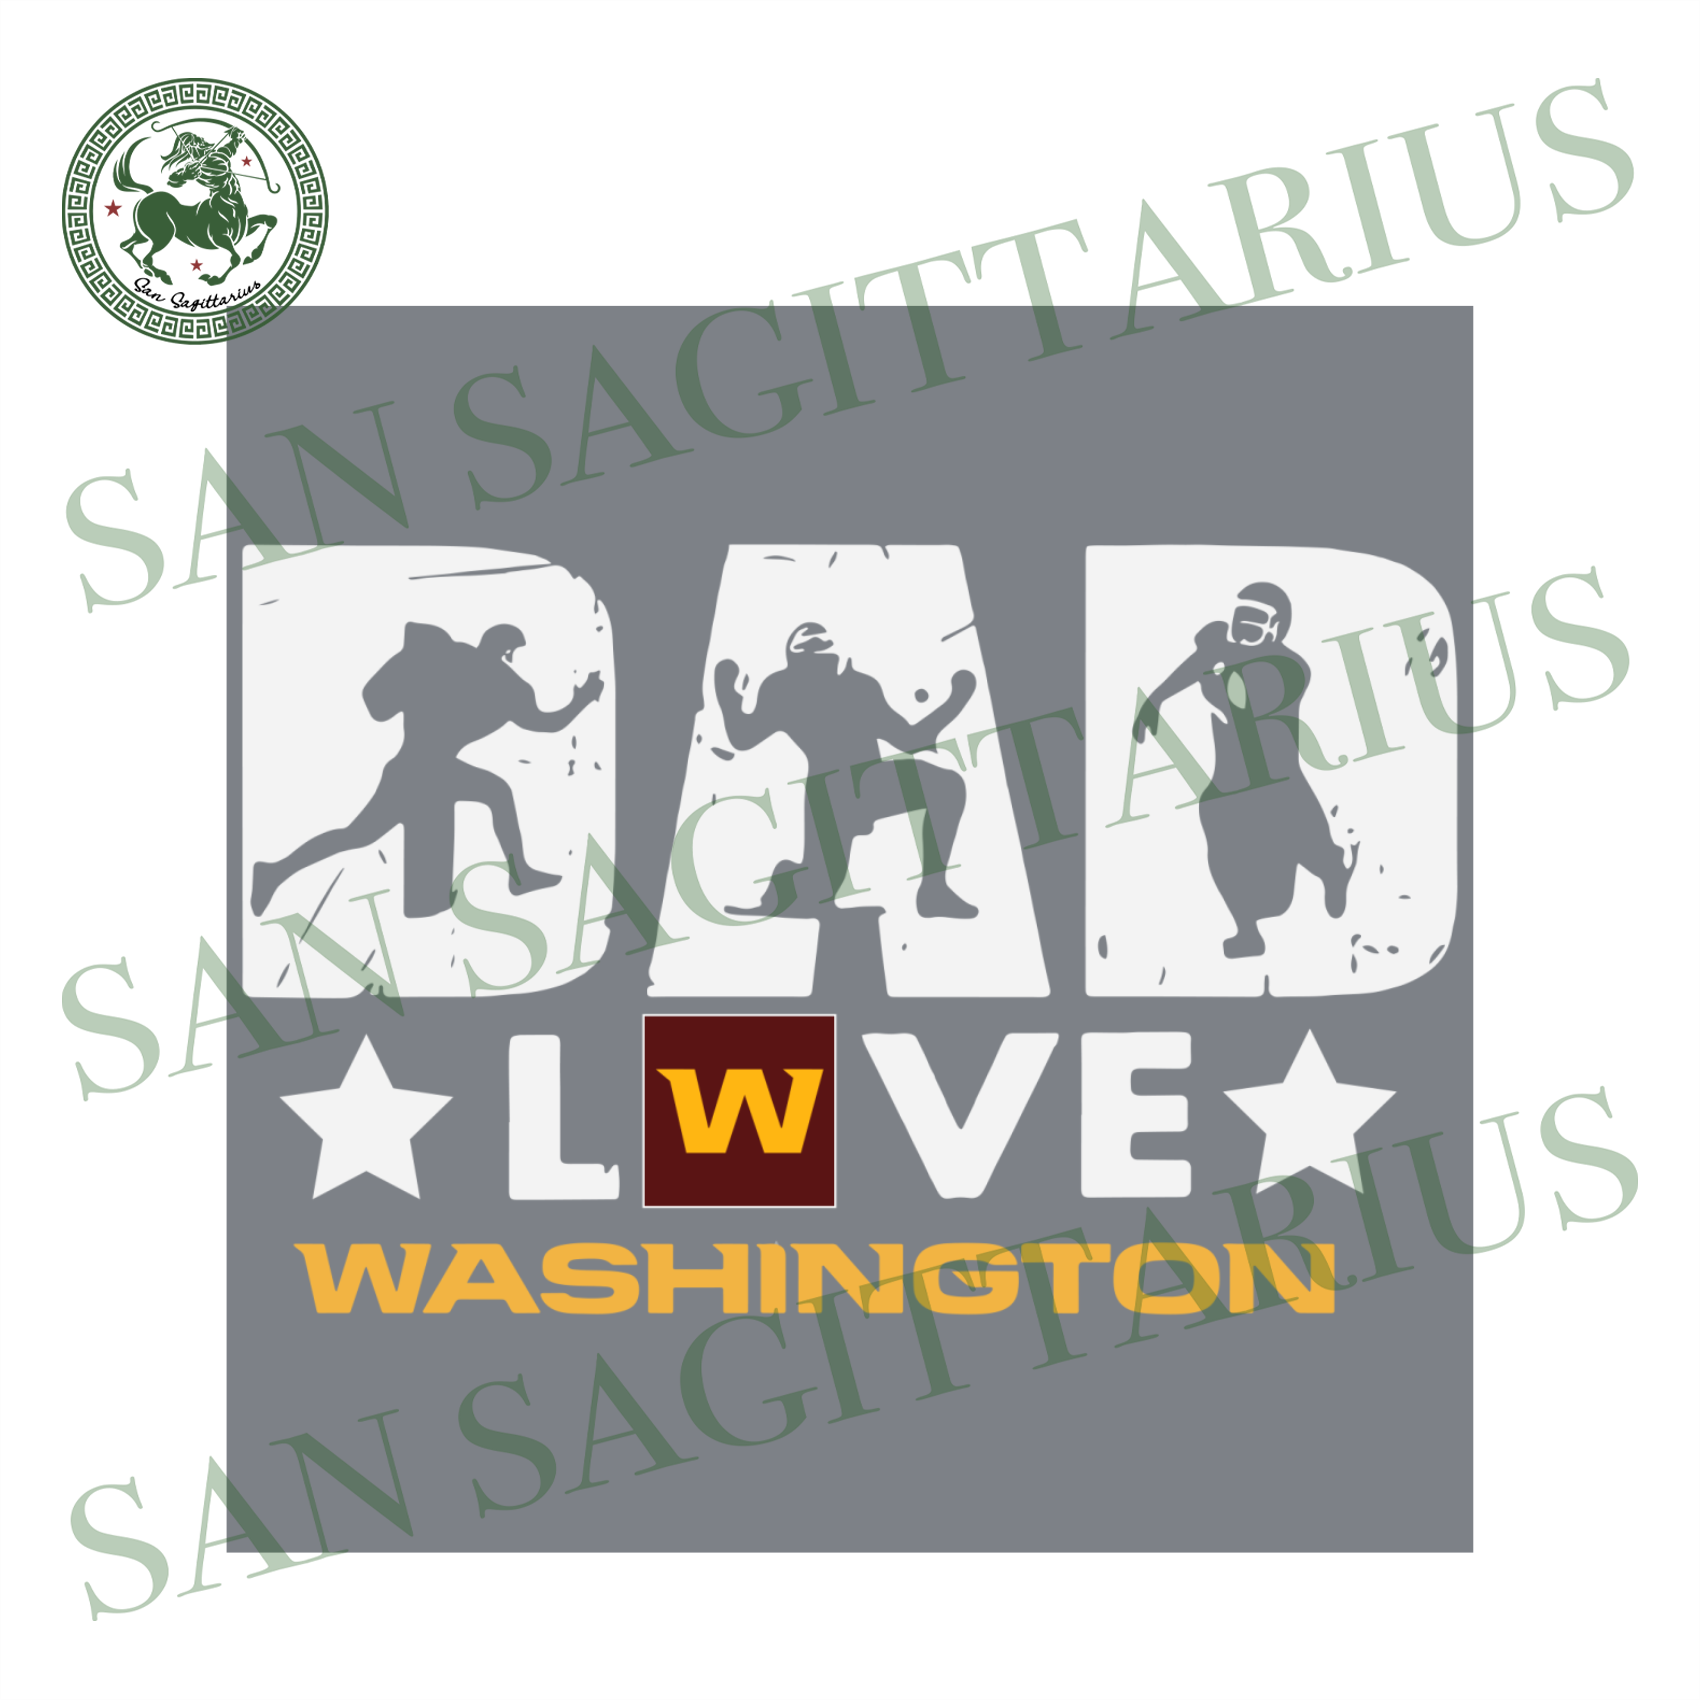 Dad Love Washington, Sport Svg, Father's Day, Washington Svg, Happy Father's Day, Washington Football, Dad Shirts, Dad Lover, Washington Shirt, Washington Football, Nfl Fabric, Dad Gifts, Foo